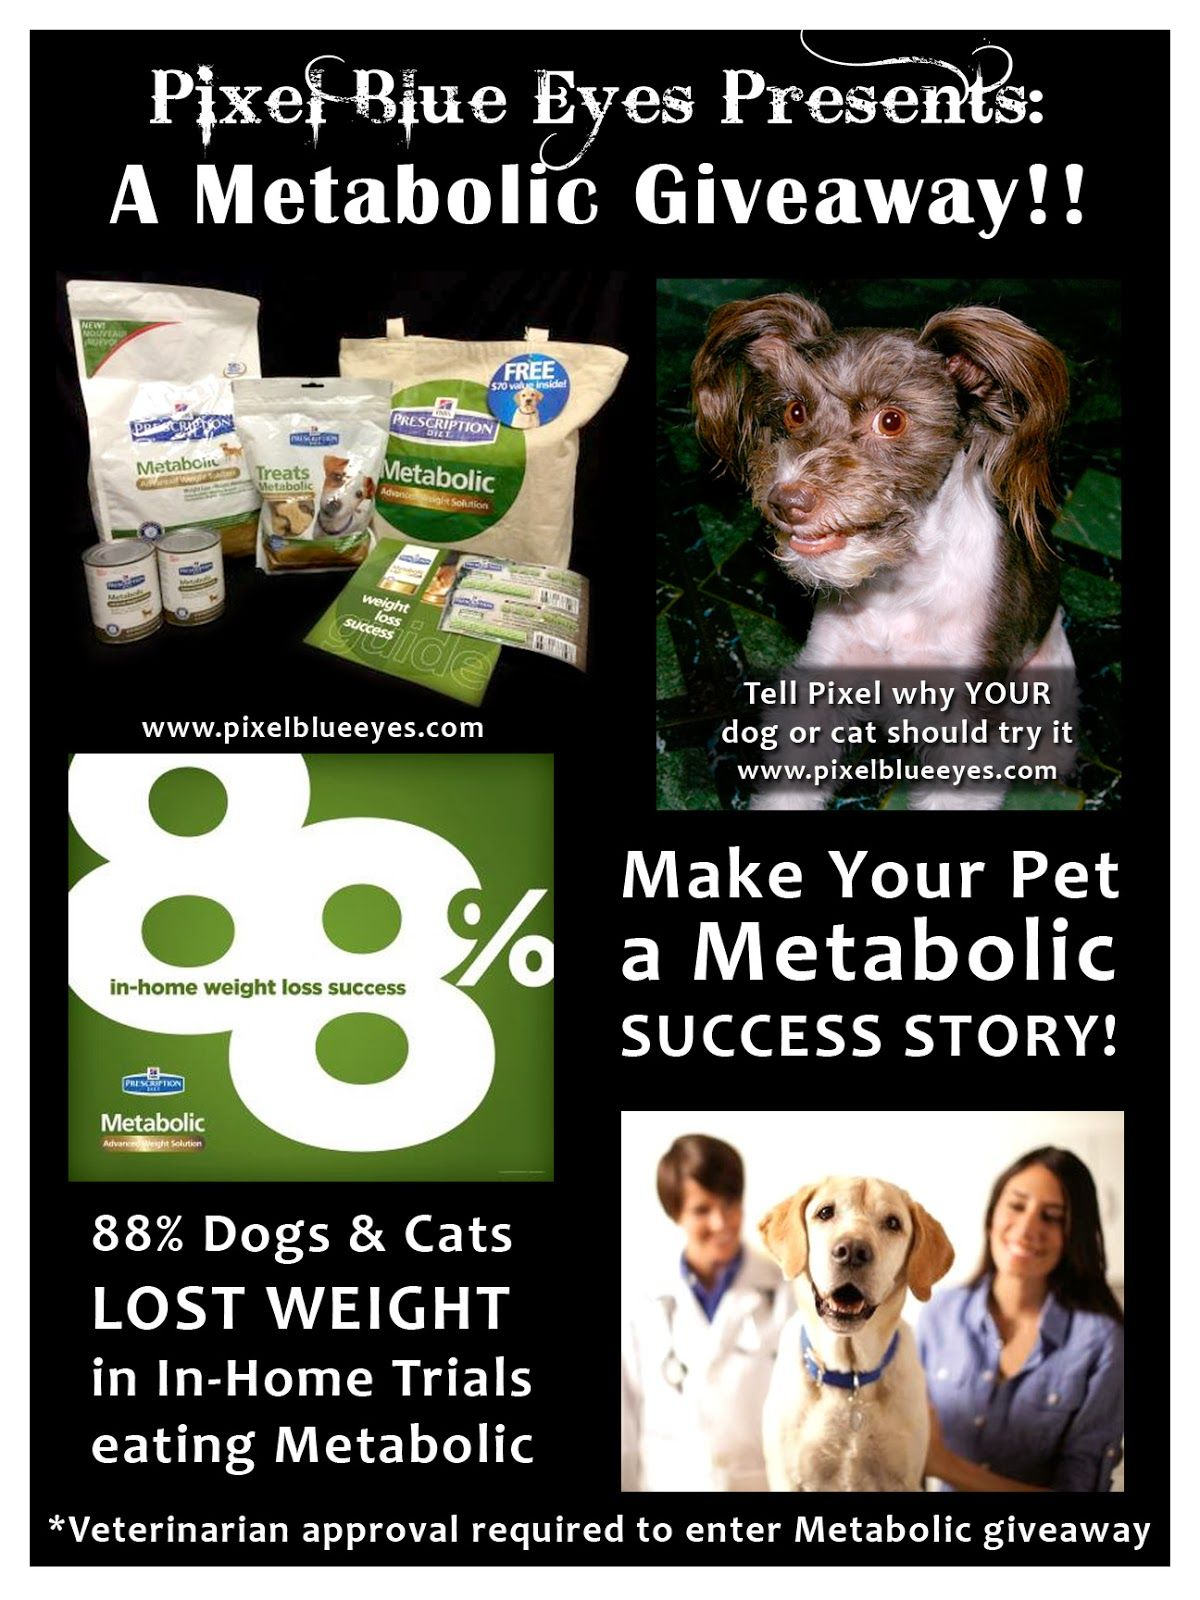 Pixel Blue Eyes Is Hosting A Giveaway Sponsored By Hill S Pet Must Get Vet Approval To Enter With Images Pets Food Animals Dog Hacks